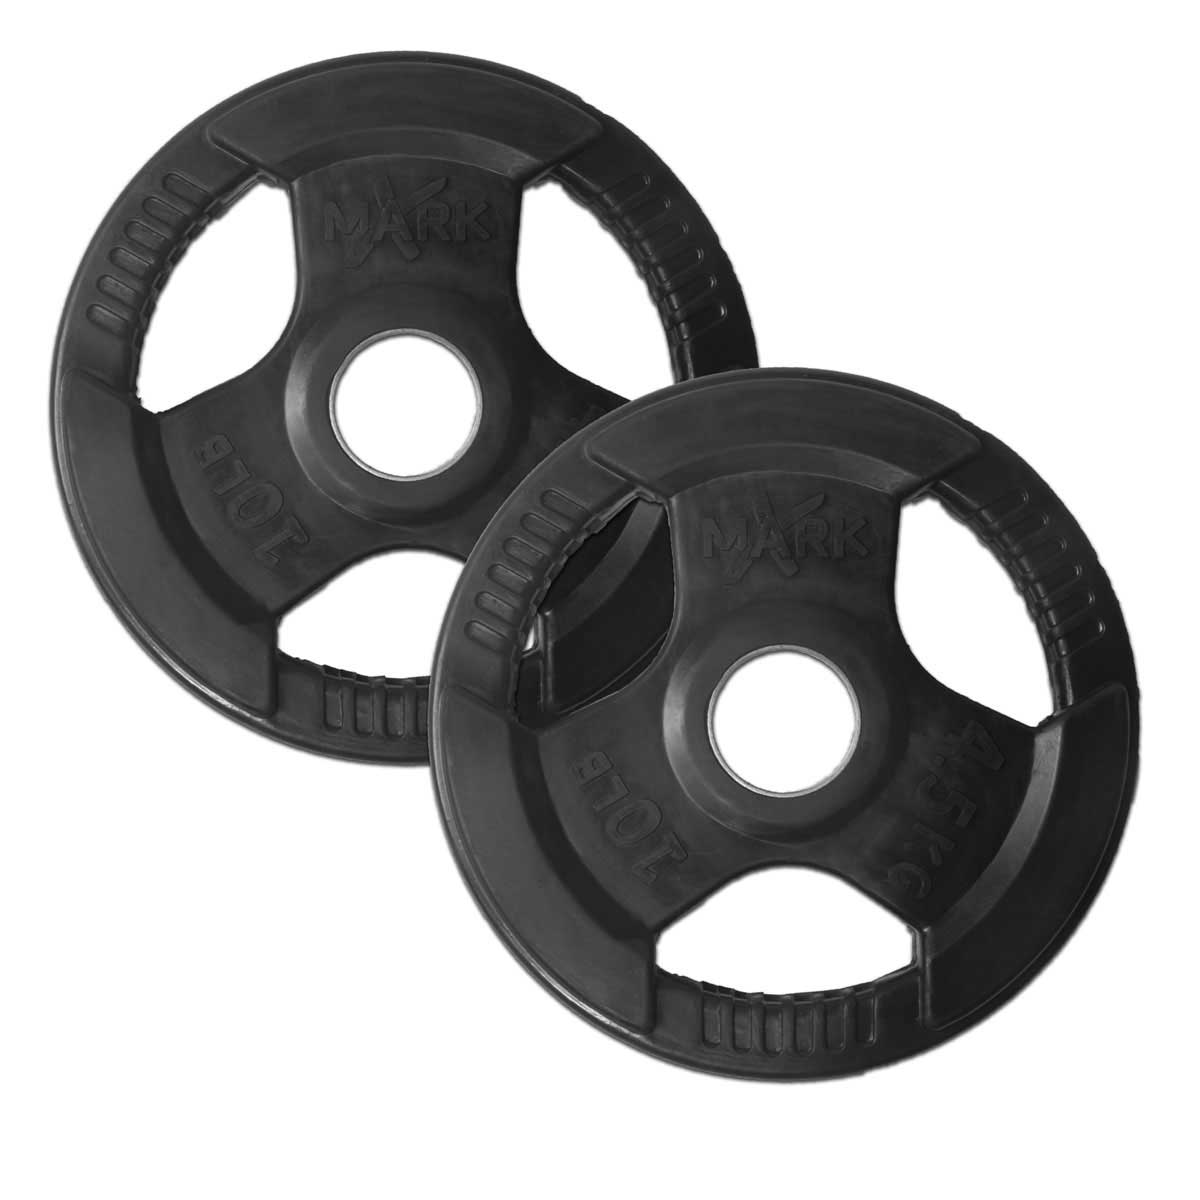 XMark Rubber Coat Tri-grip Olympic Plate Weights-10lb (Pair)